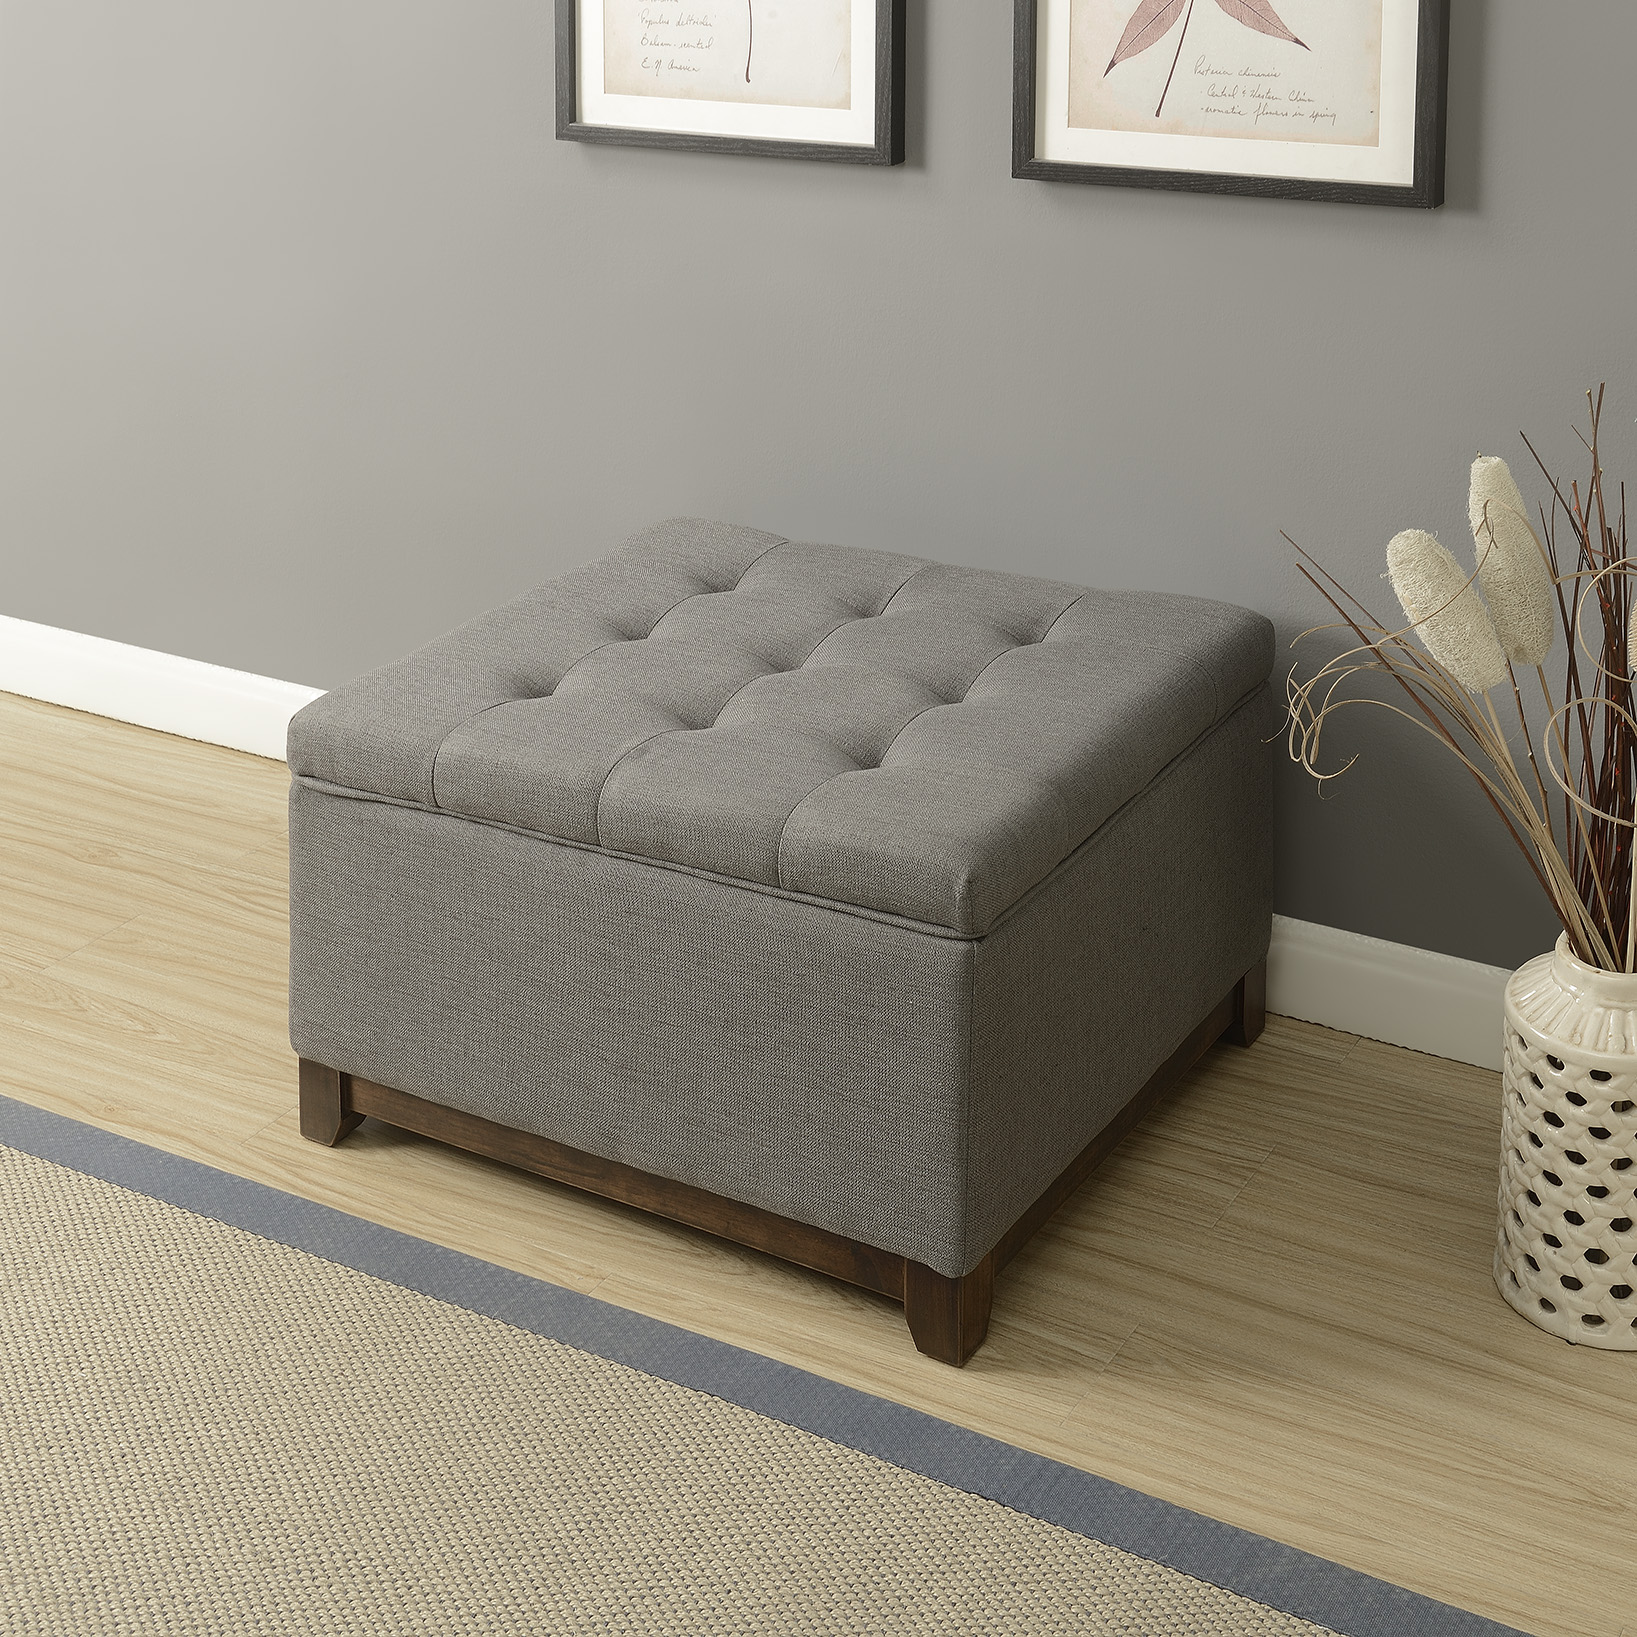 thumbnail 12 - Large Storage Ottoman Stool Bench Seat Linen Tufted, (Brown, Gray and Navy)